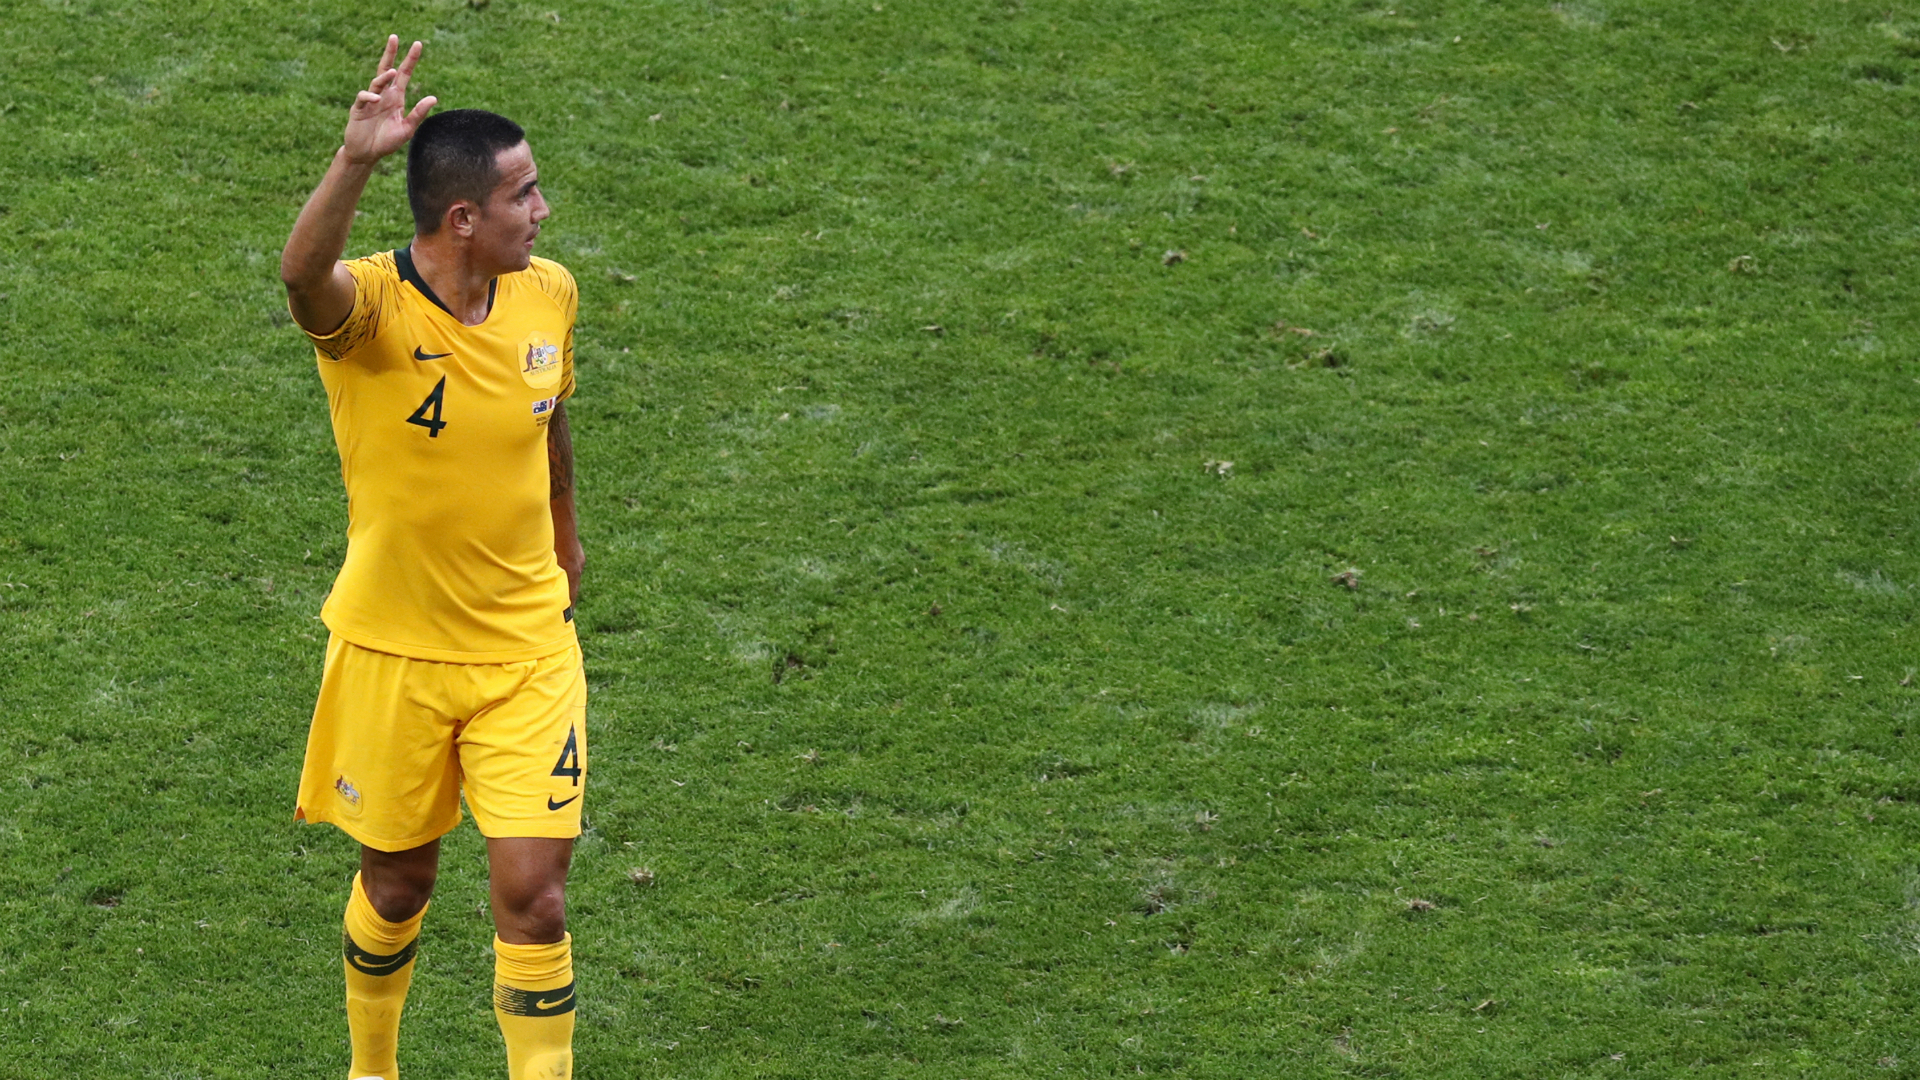 Tim Cahill: Africa's first World Cup was one of the best because of the warmth of the people